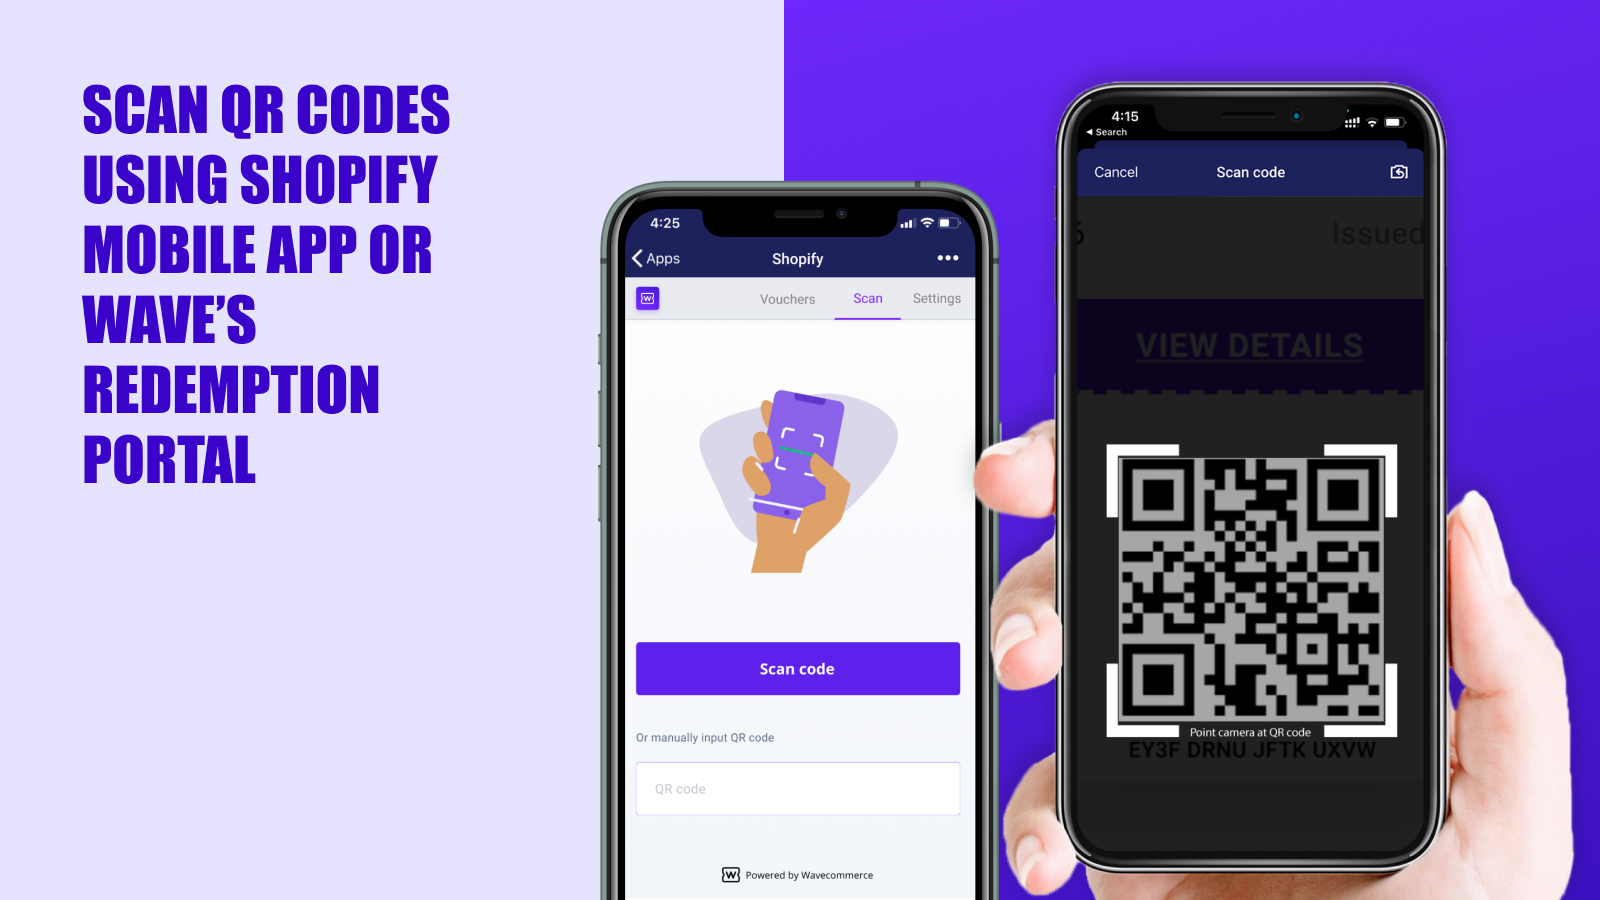 Scan using Shopify mobile app to redeem QR codes